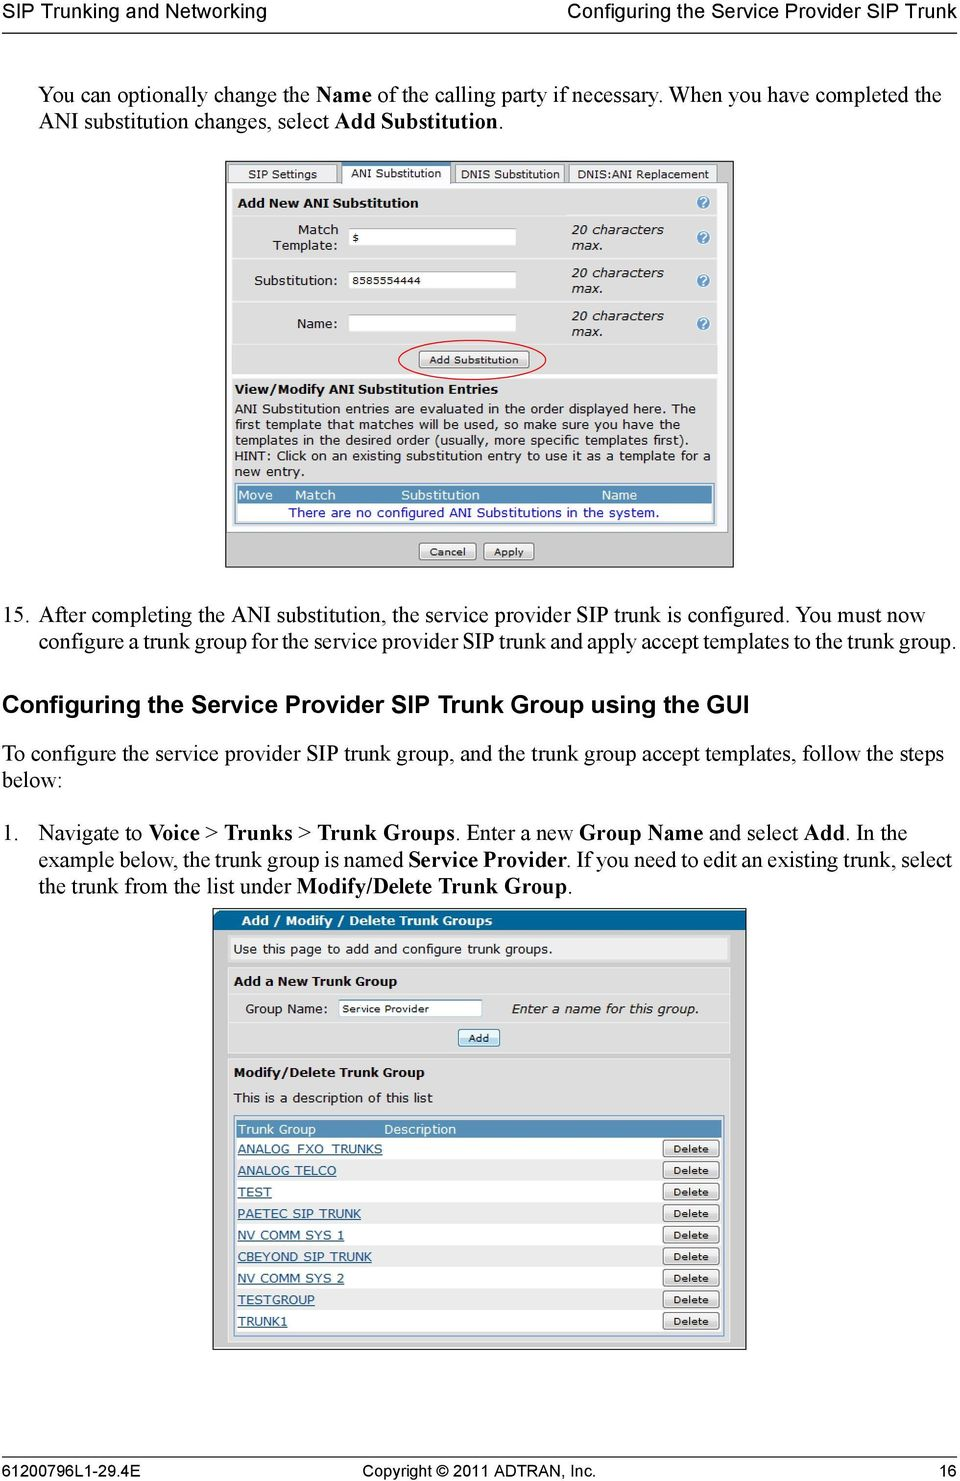 You must now configure a trunk group for the service provider SIP trunk and apply accept templates to the trunk group.